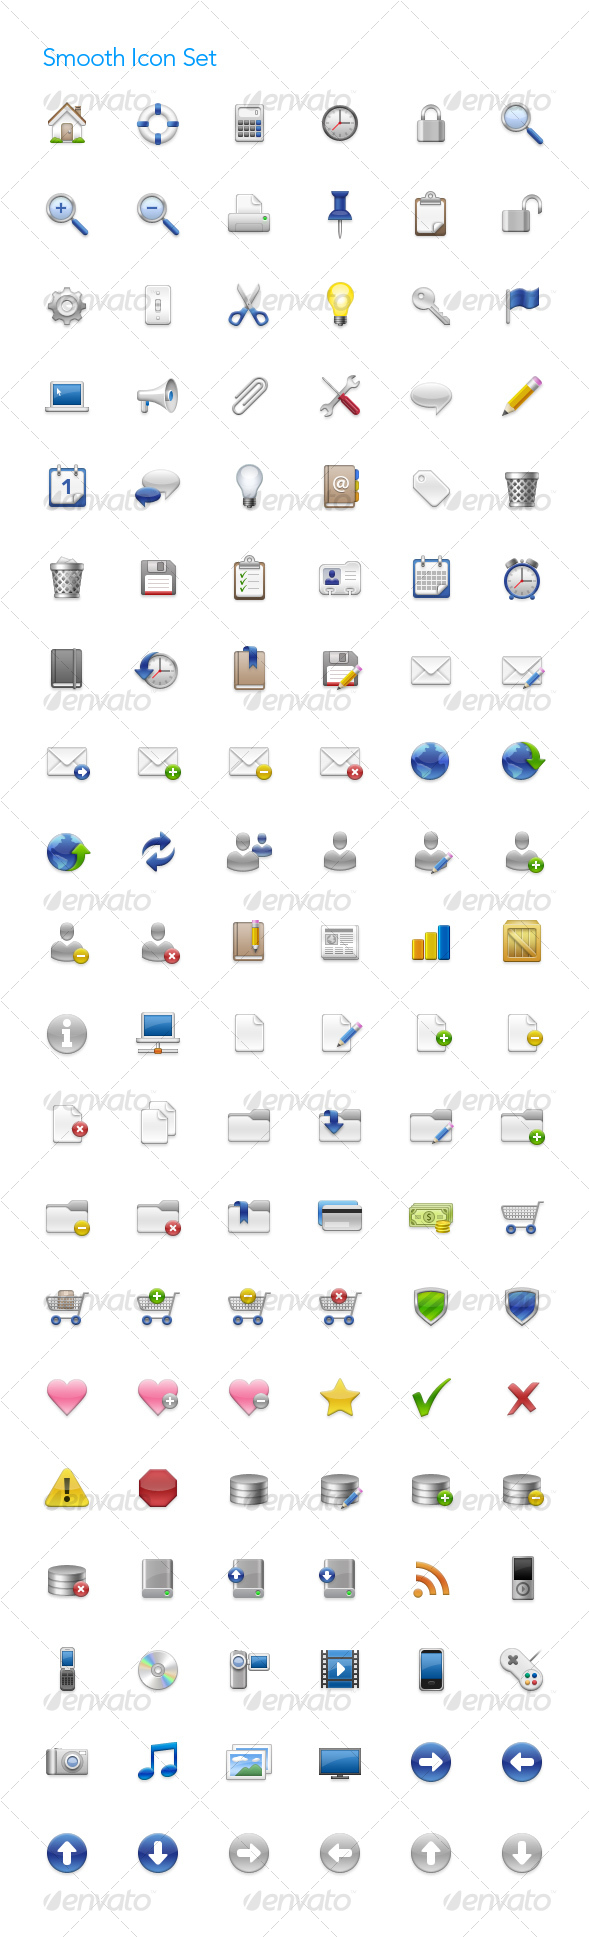 Smooth Icon Set - Web Icons